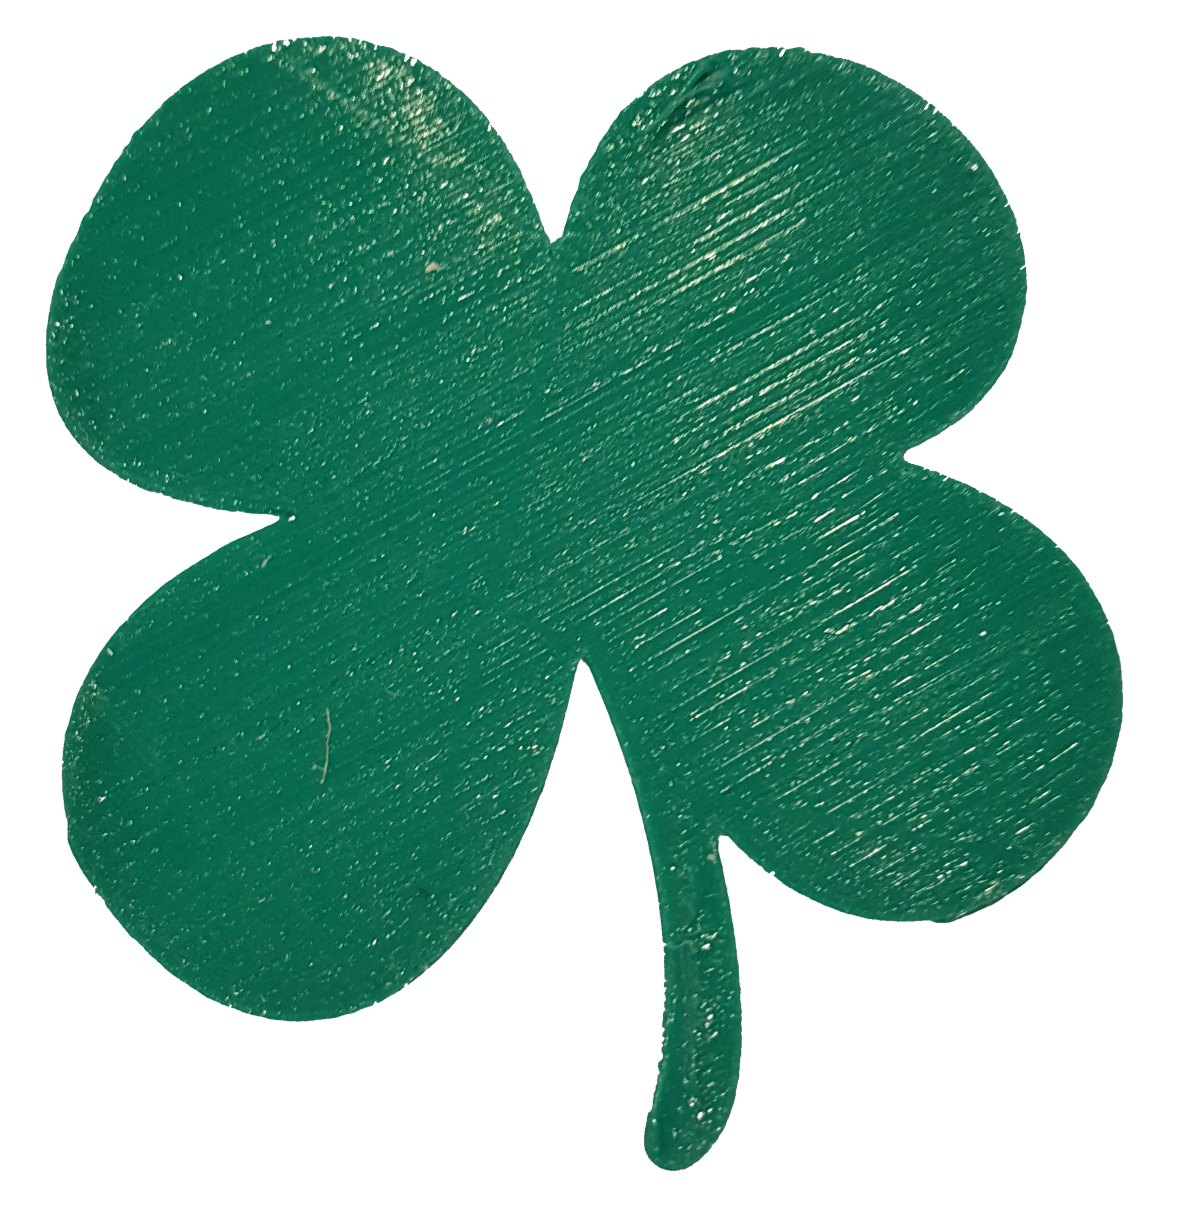 3d printed shamrock or 4 leaf clover by barb 3dprintny pinshape